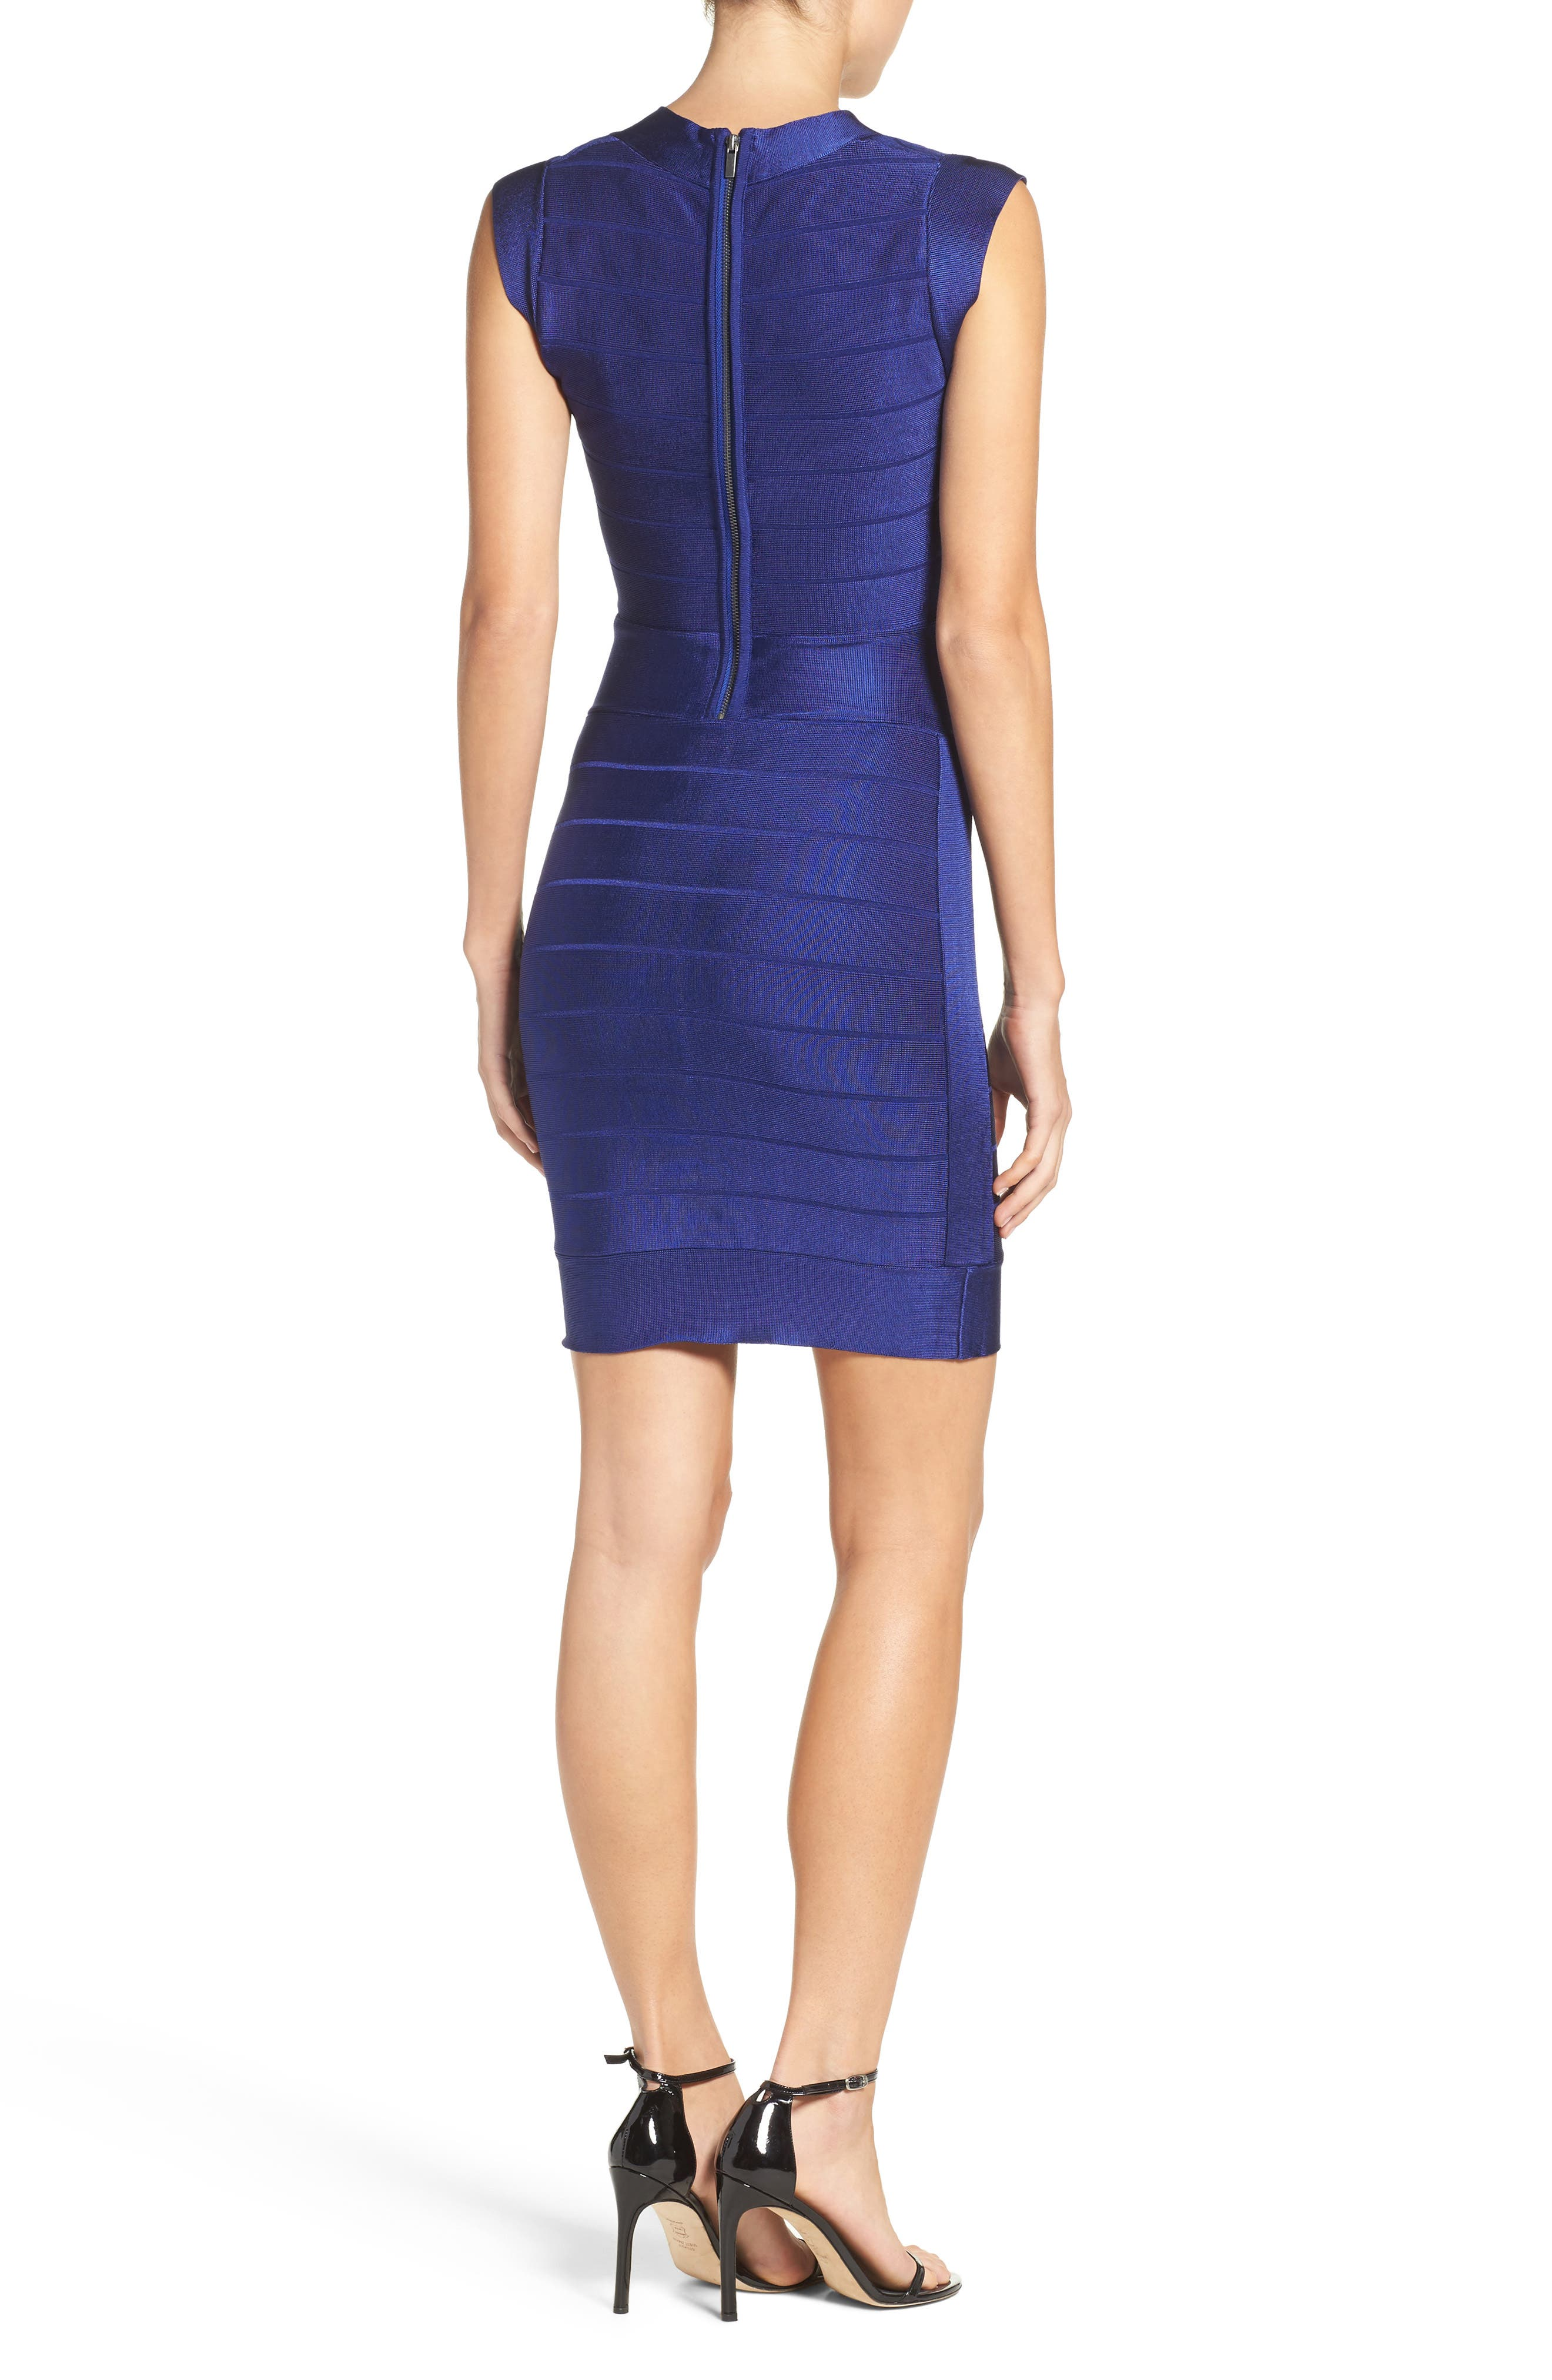 Spotlight Bandage Dress,                             Alternate thumbnail 2, color,                             431